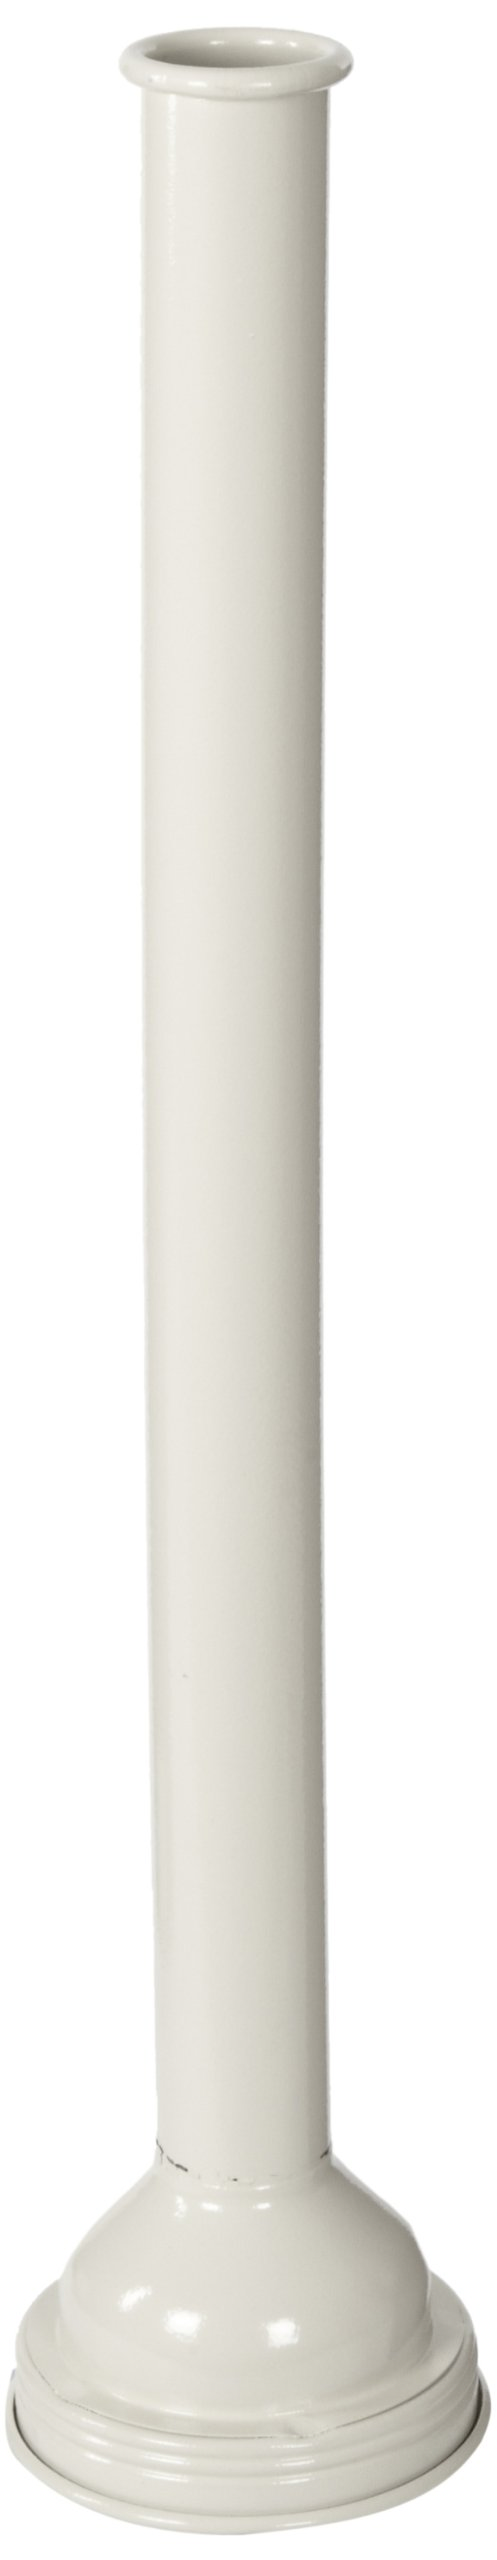 Eagle J-1200BEI Metal Tube, Beige, For 1200 Series Butt Can